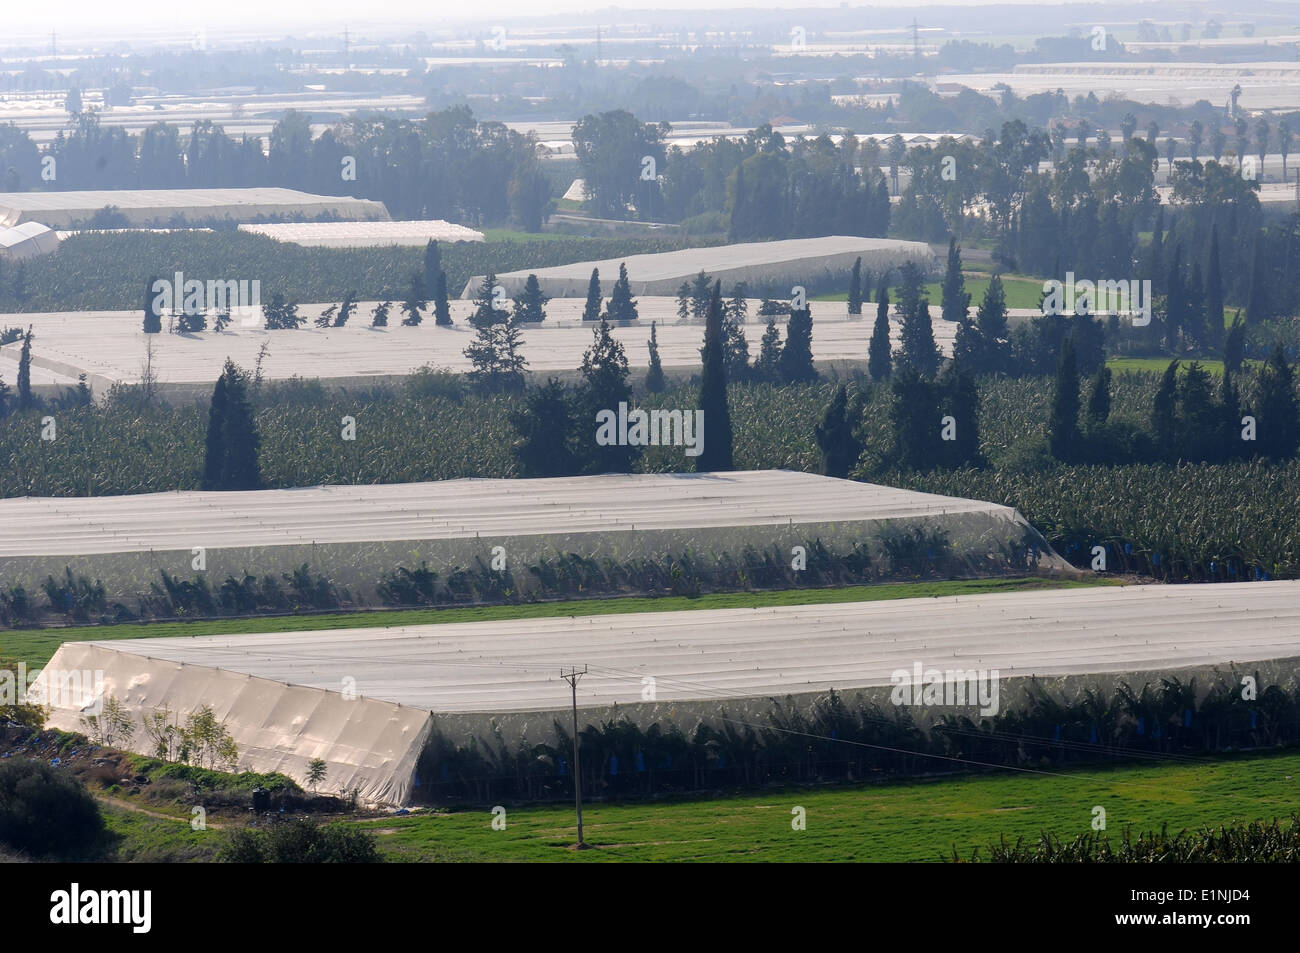 Greenhouses on agricultural land, Israel - Stock Image